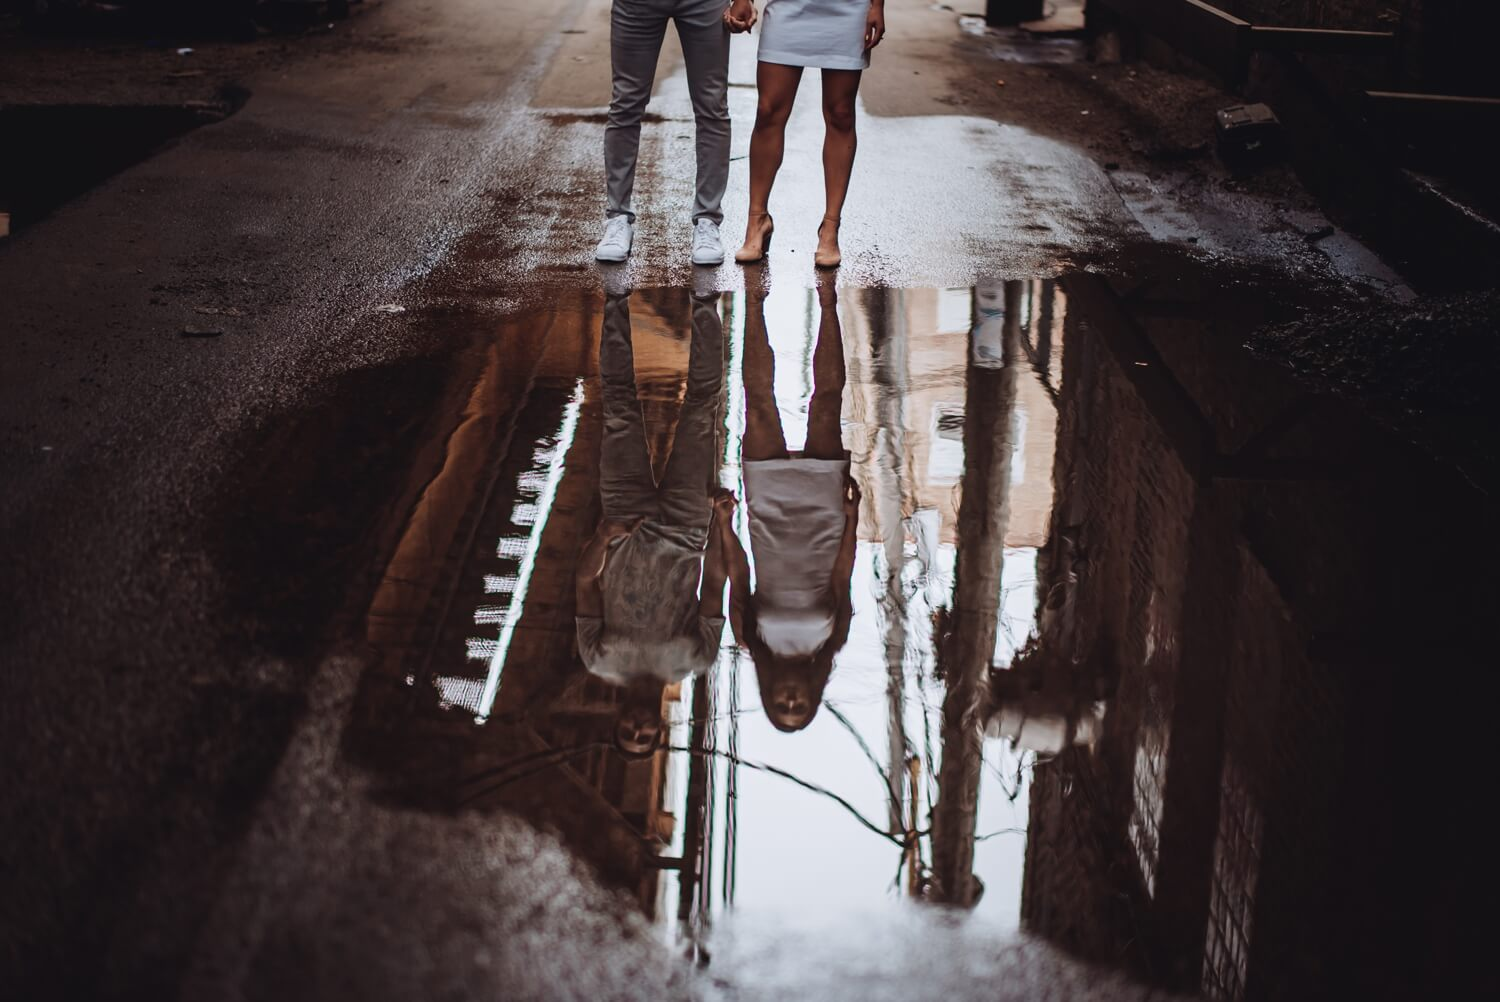 Wicker Park Engagement Photographer - The Adamkovi, grungy engagement photo shoot. Puddle refelctions